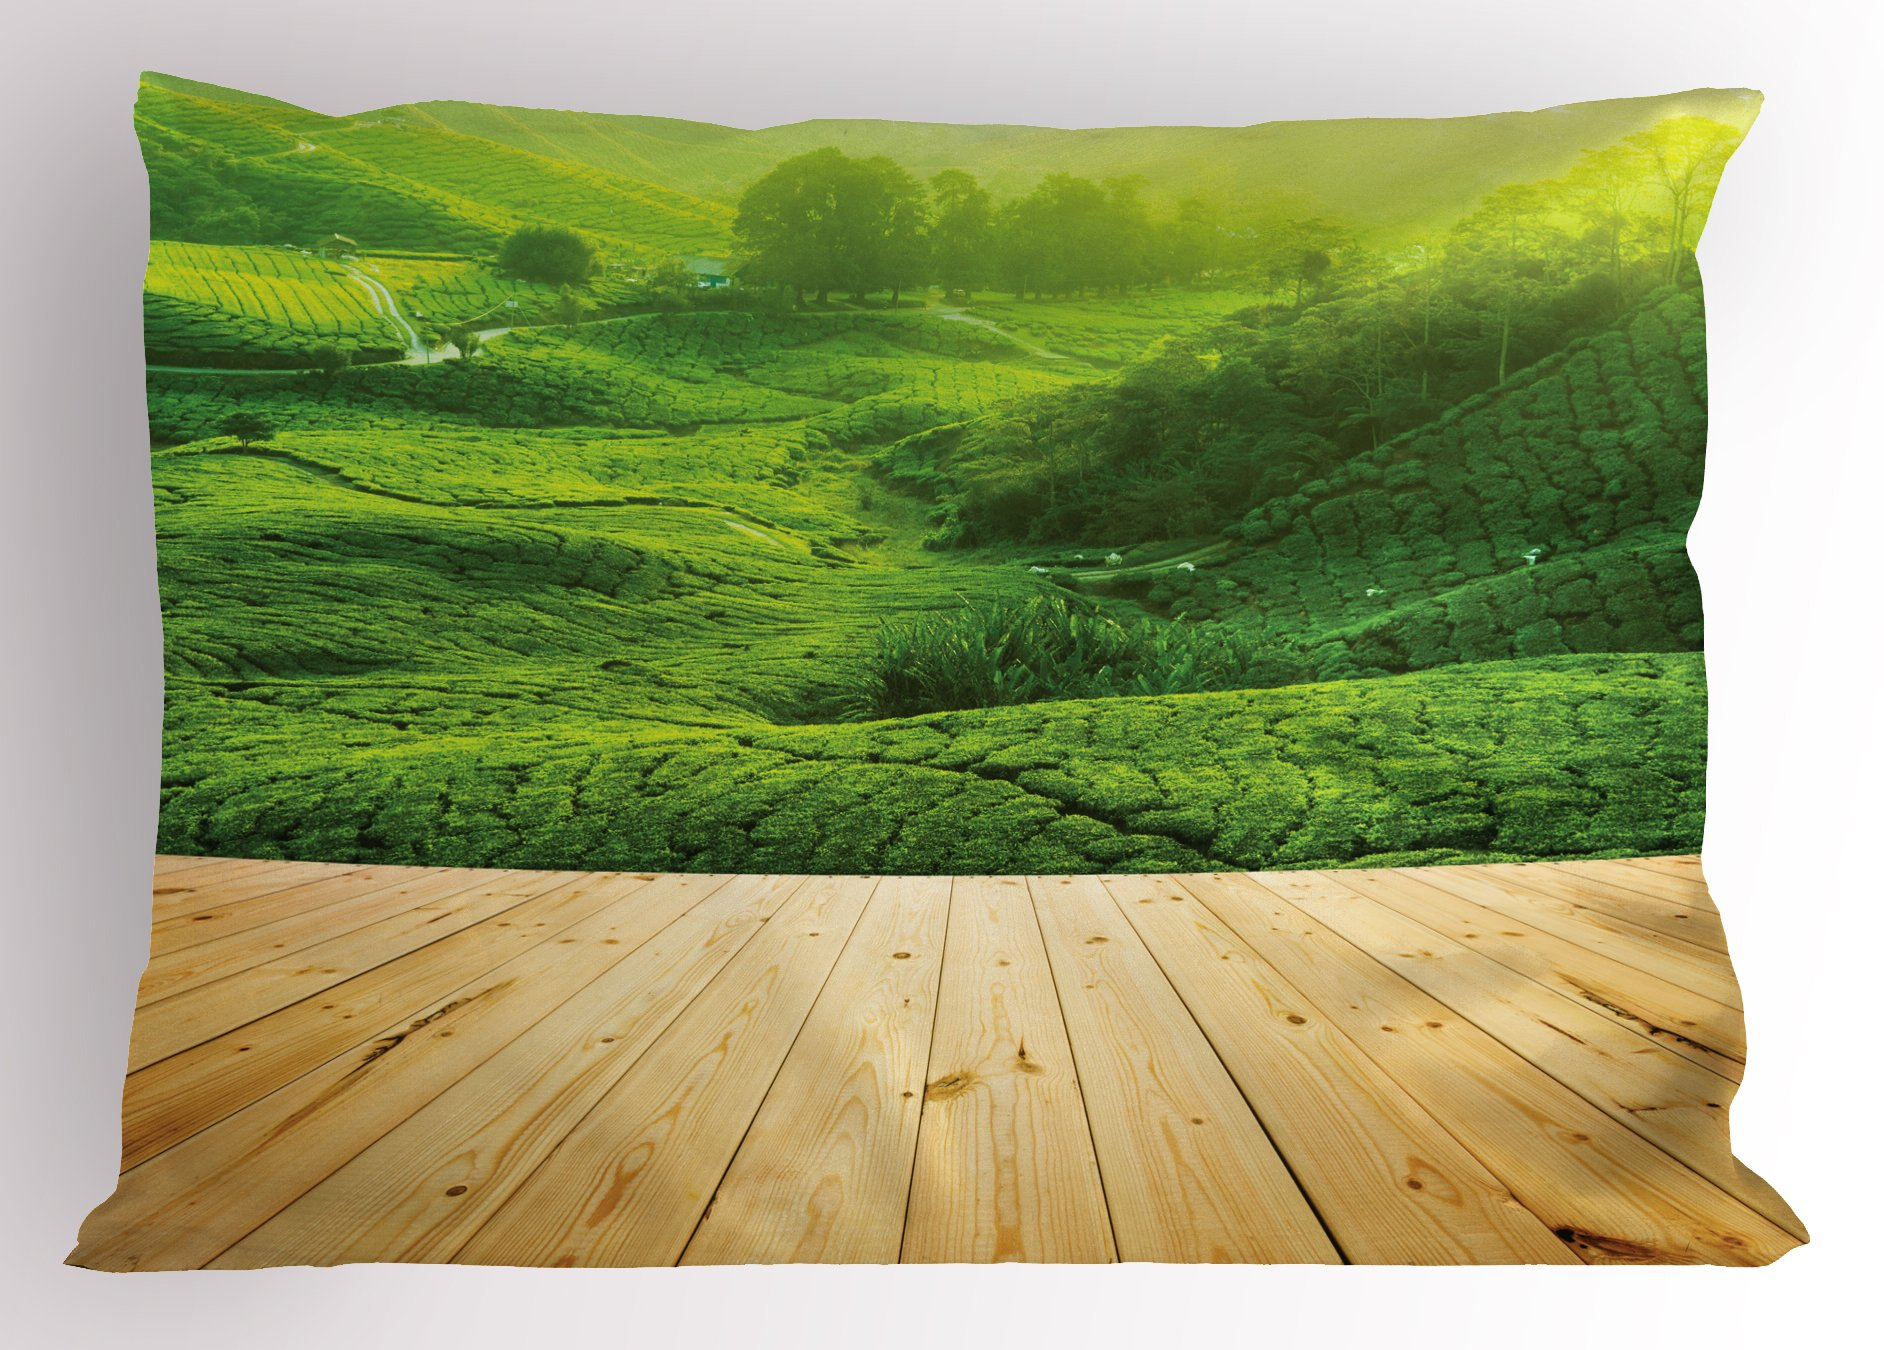 Lunarable Rustic Pillow Sham, Highlands Tea Plantations from Wood Balcony Perspective Sunrise in Eary Morning with Fog, Decorative Standard Size Printed Pillowcase, 26 X 20 inches, Green